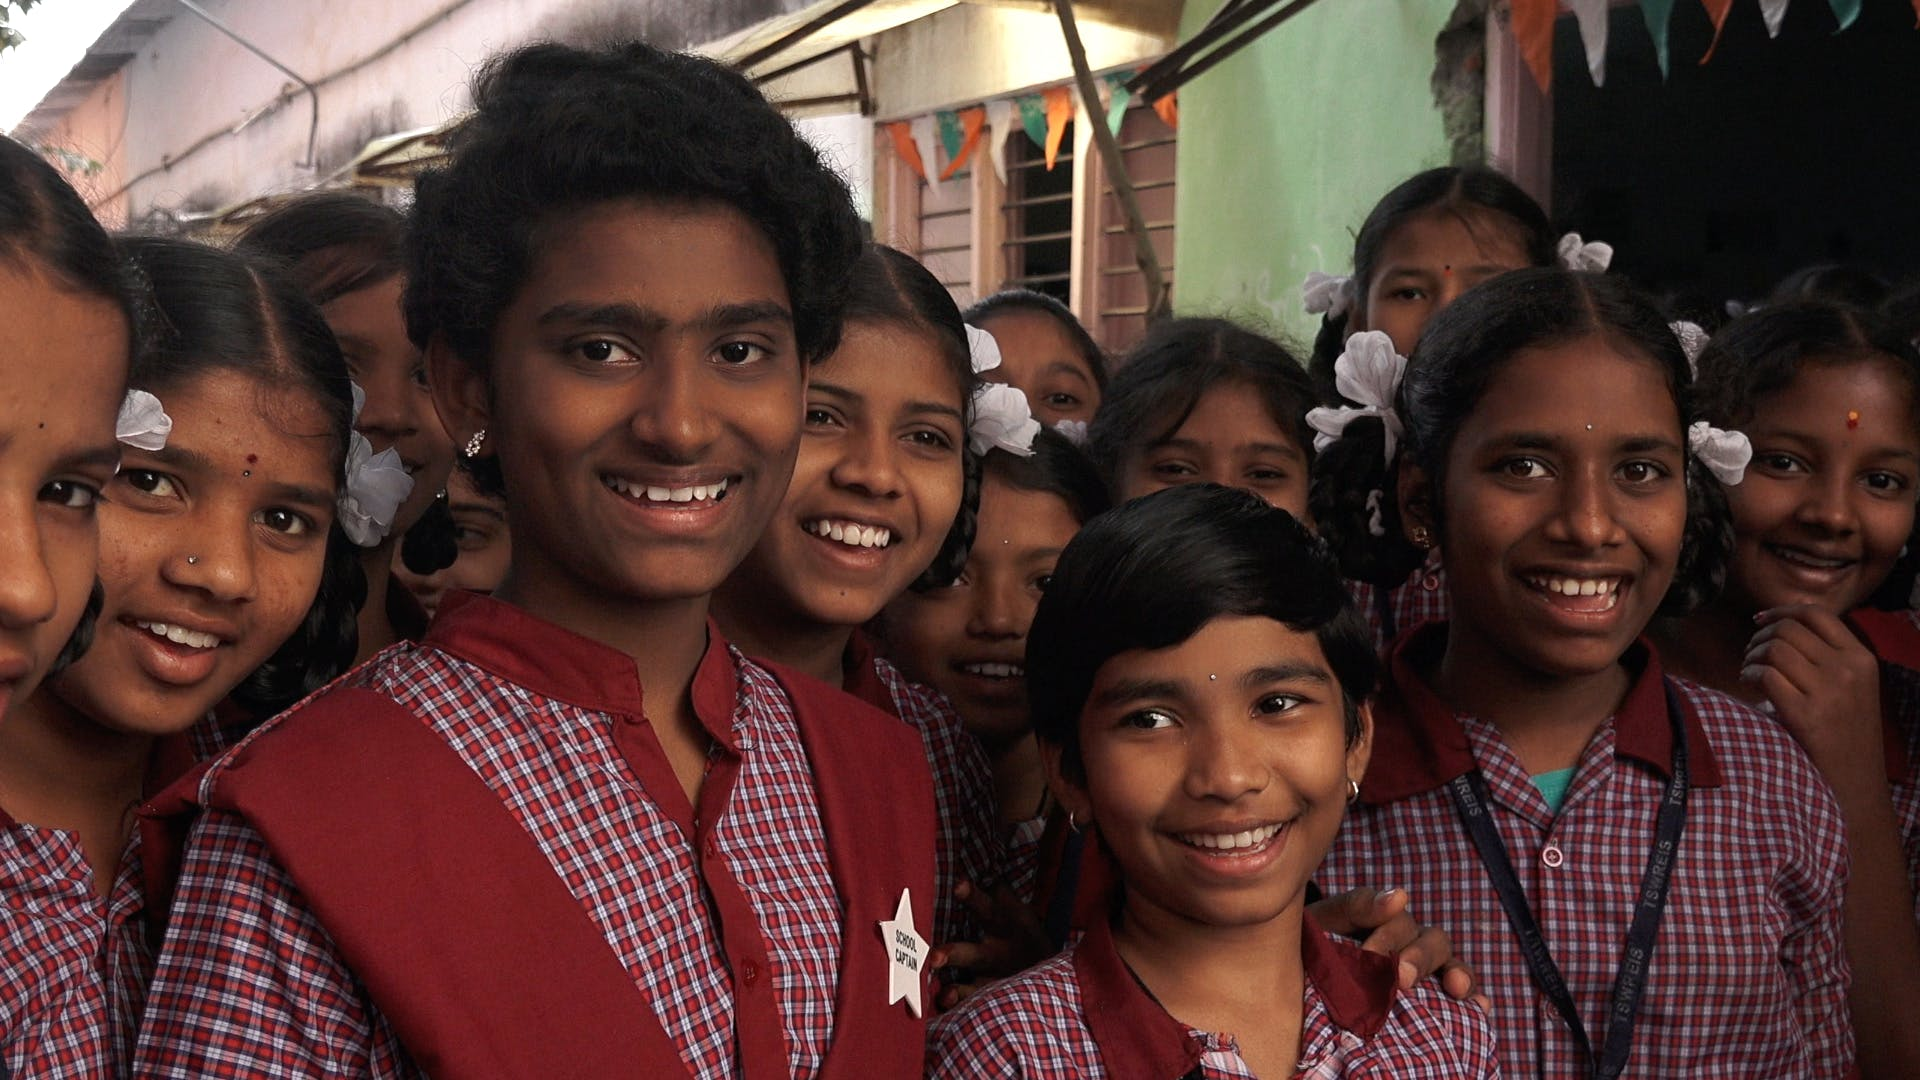 STEM students from the Freedom School in Hyderabad, Telangana